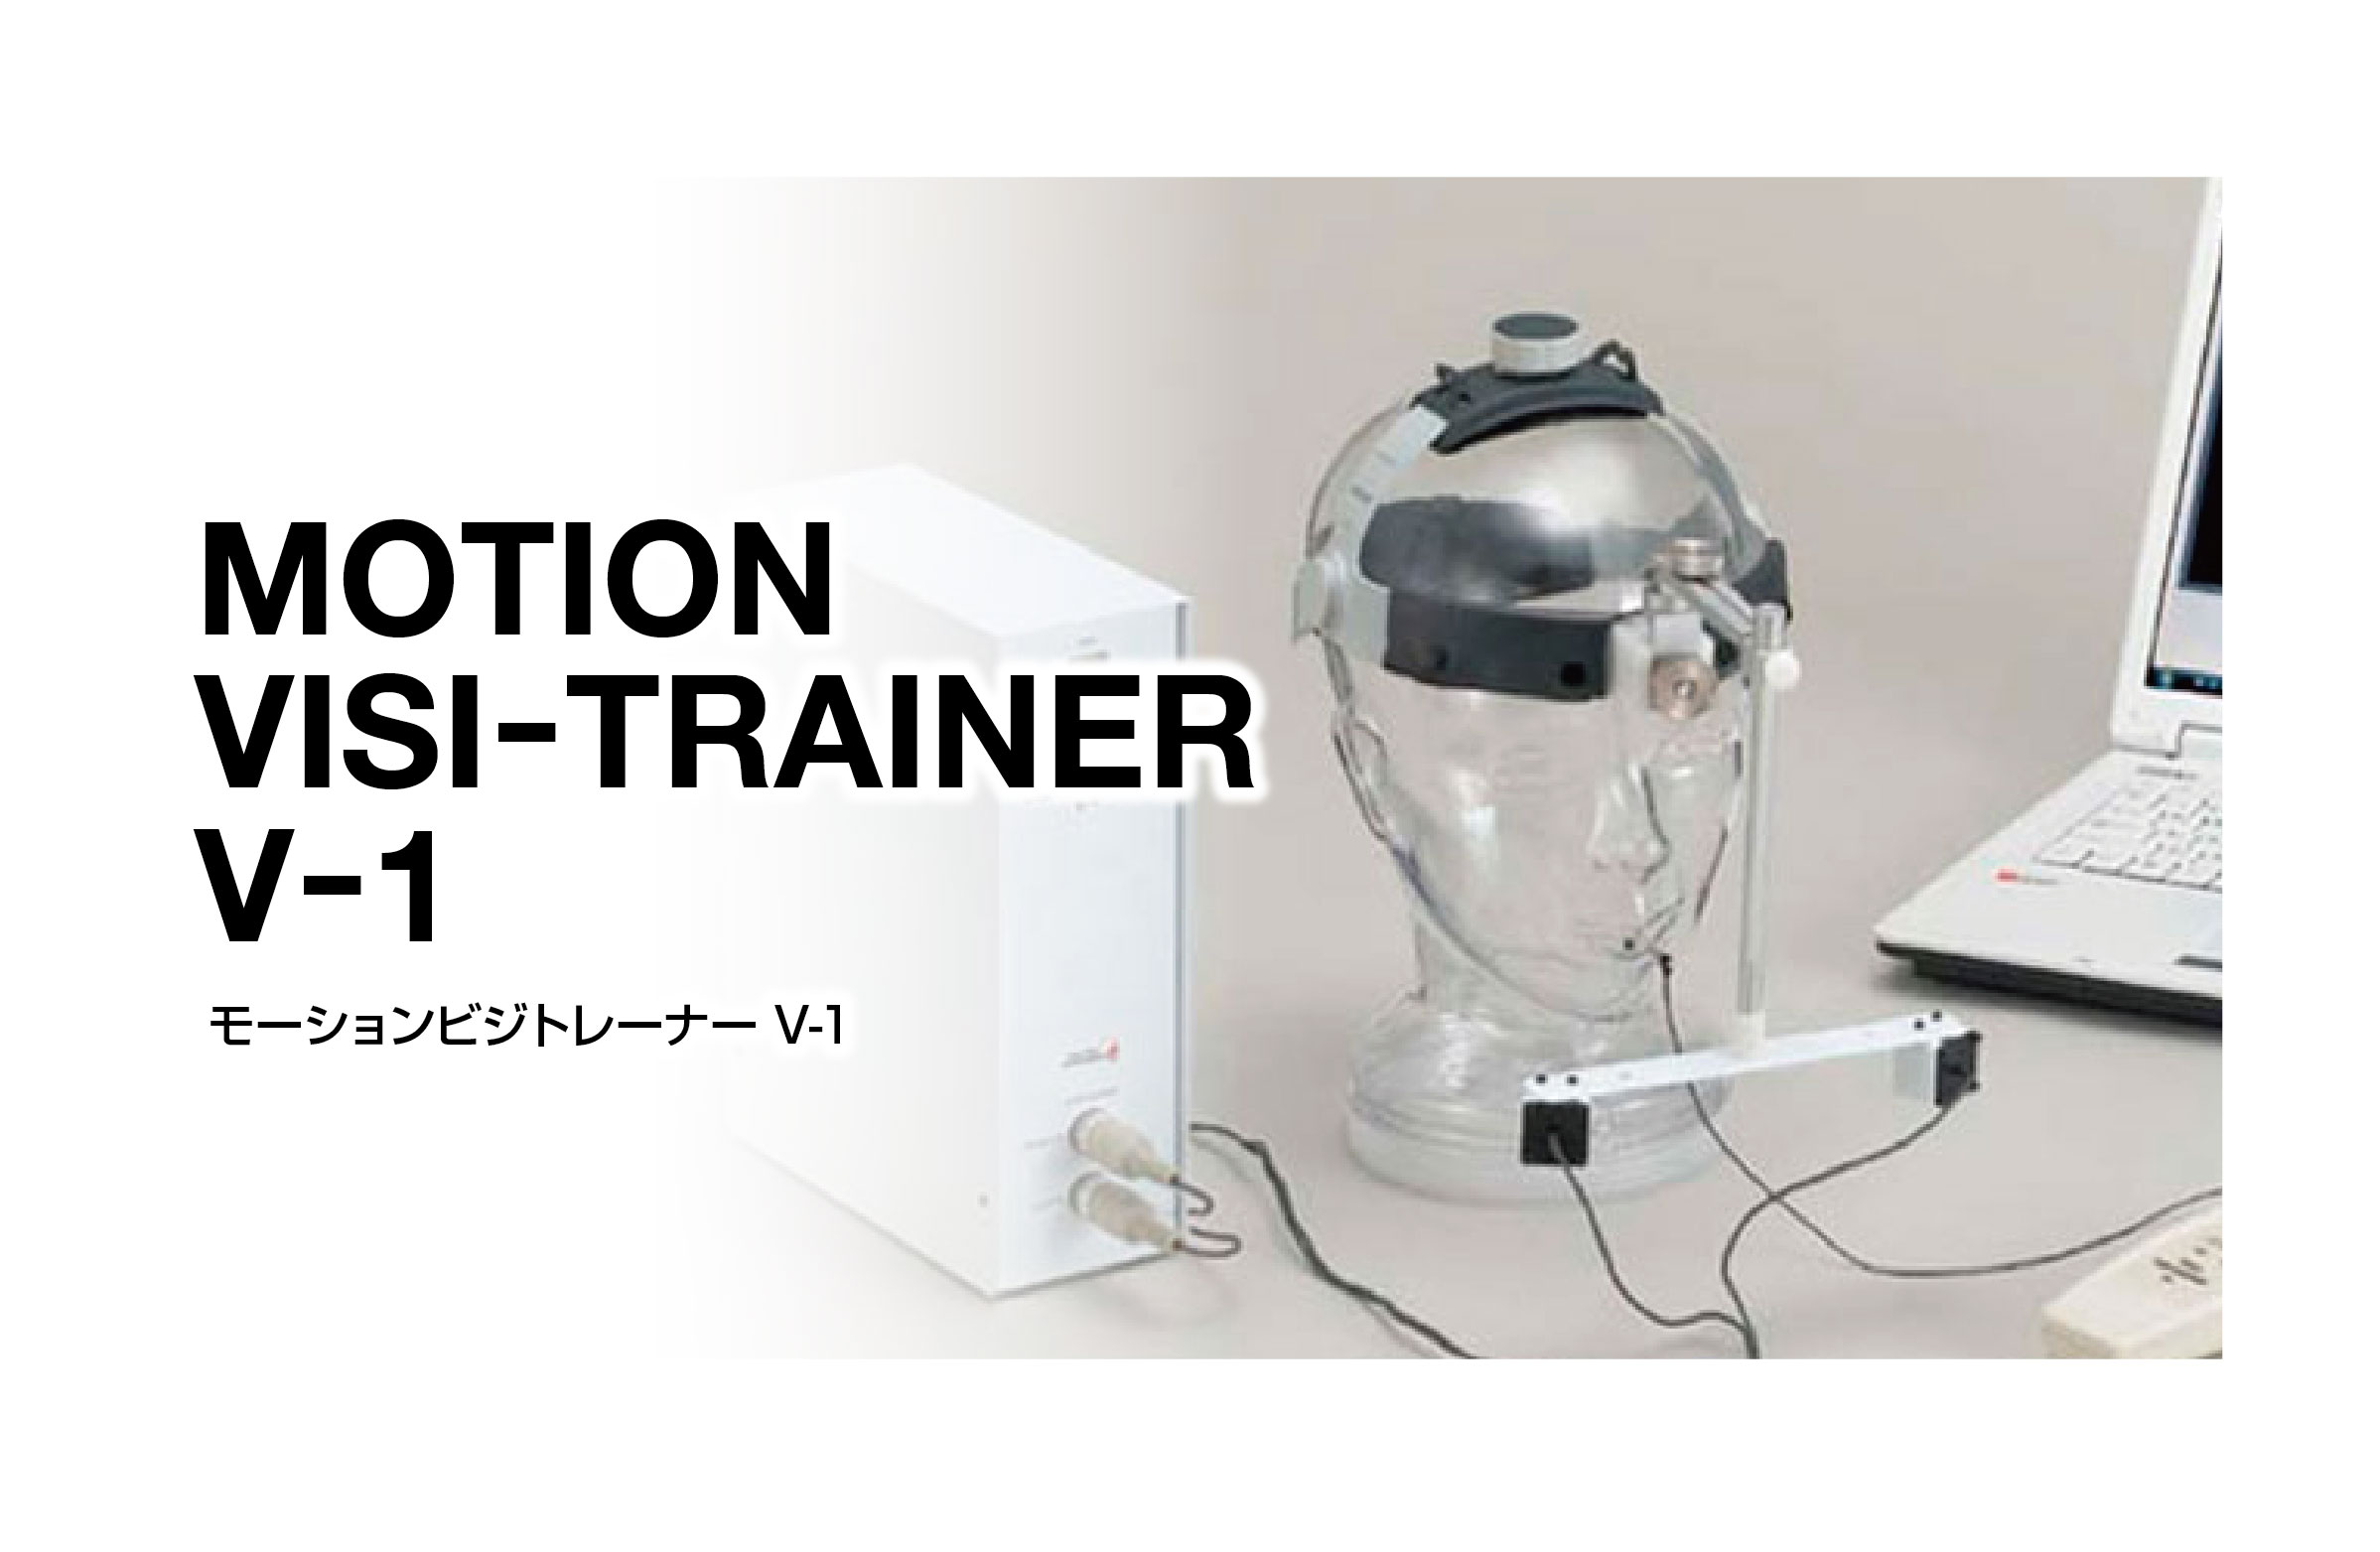 MOTION VISI-TRAINER V-1